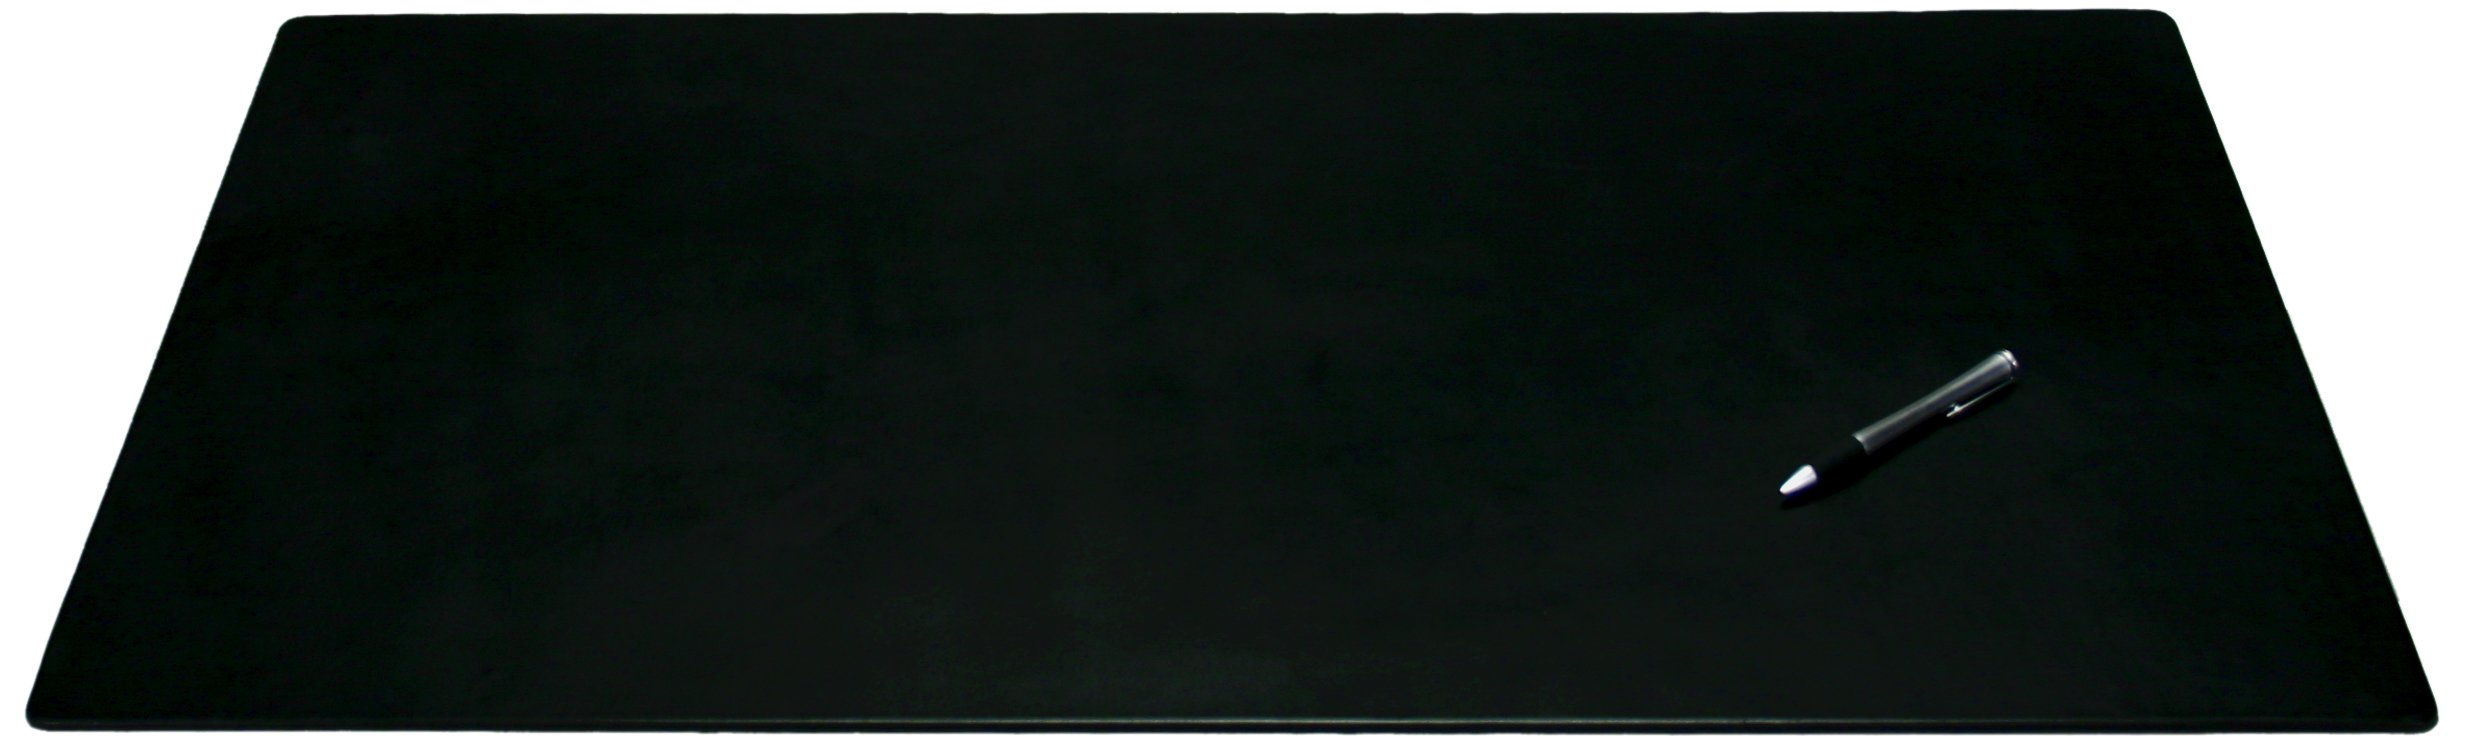 Dacasso Black Leather Desk Mat, 38-Inch by 24-Inch